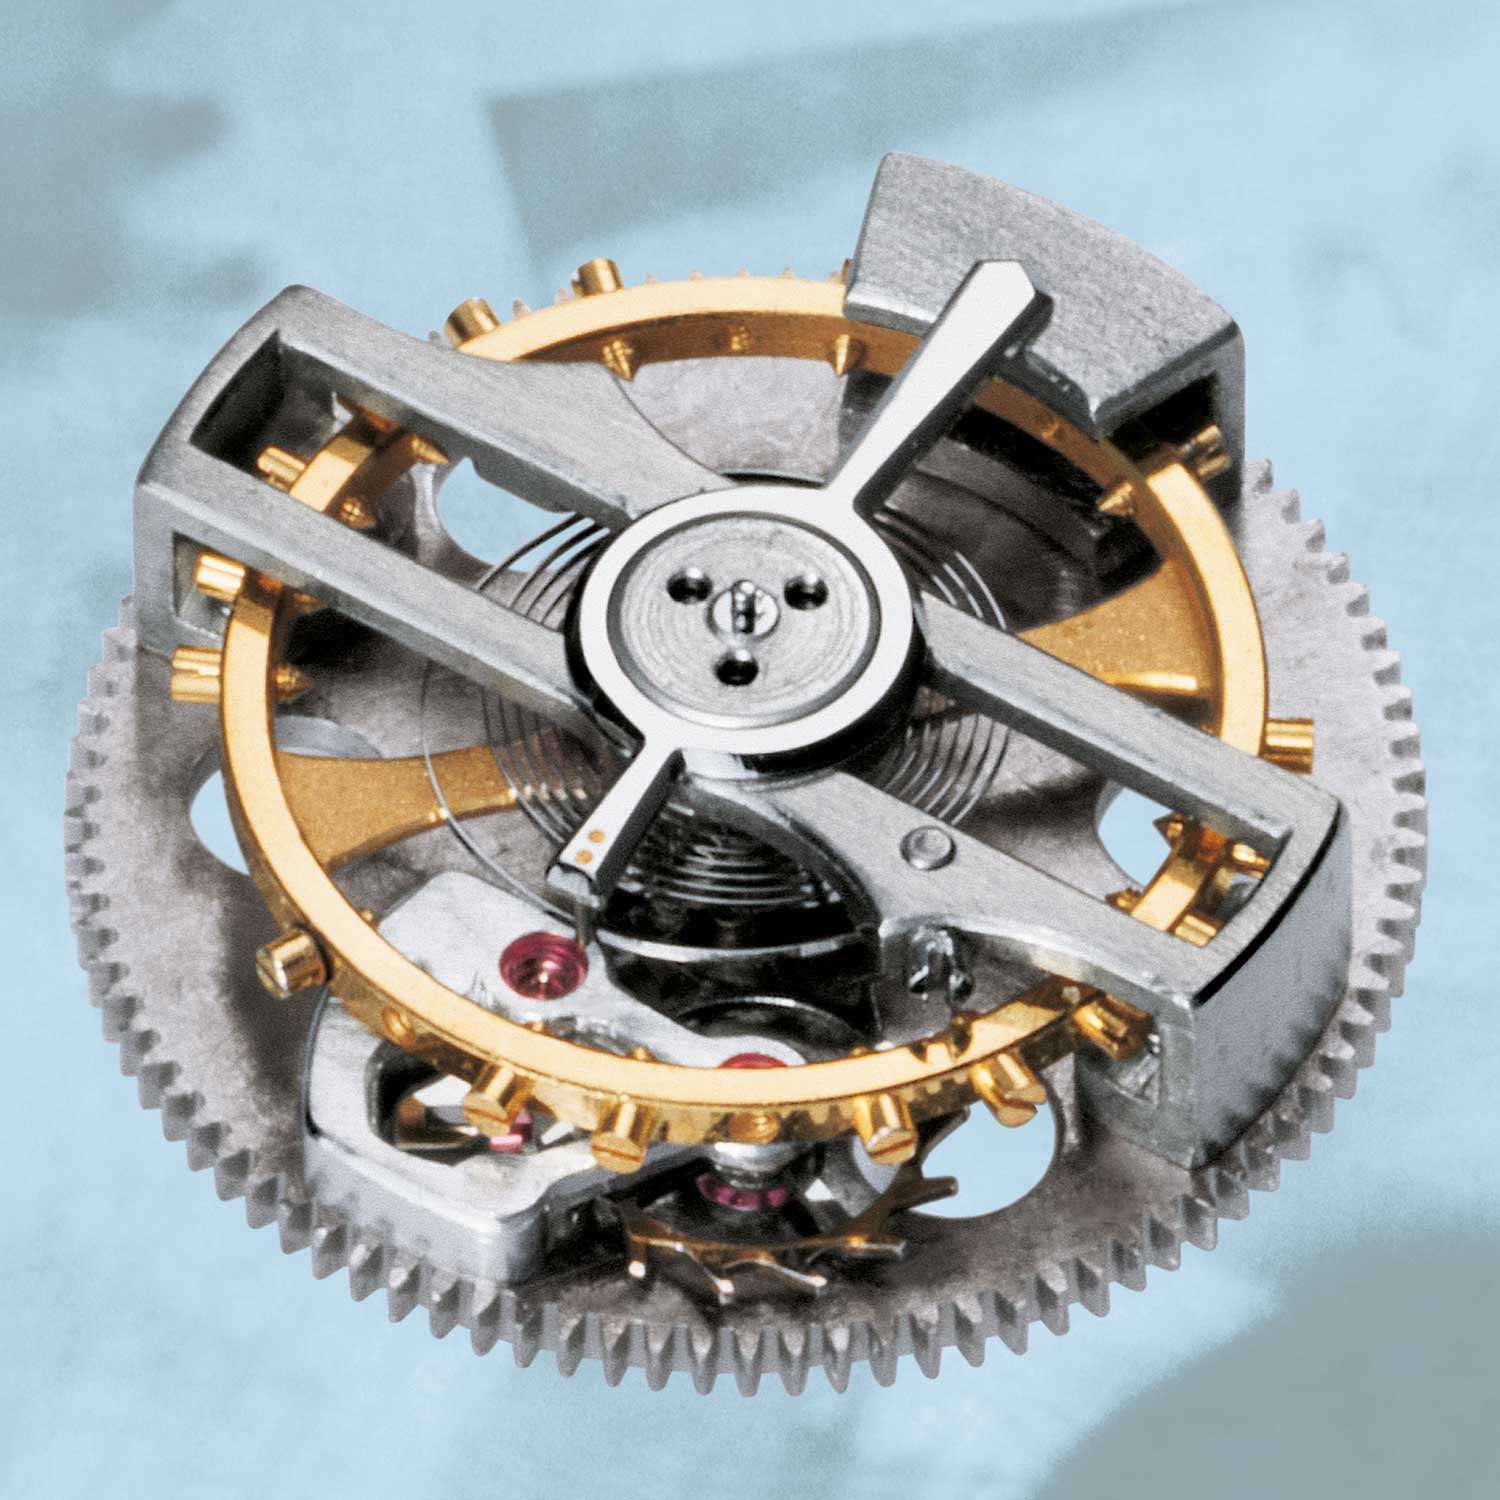 The tourbillon mechanism of the of the Calibre 2870 which weighed but a mere 0.123 grams)